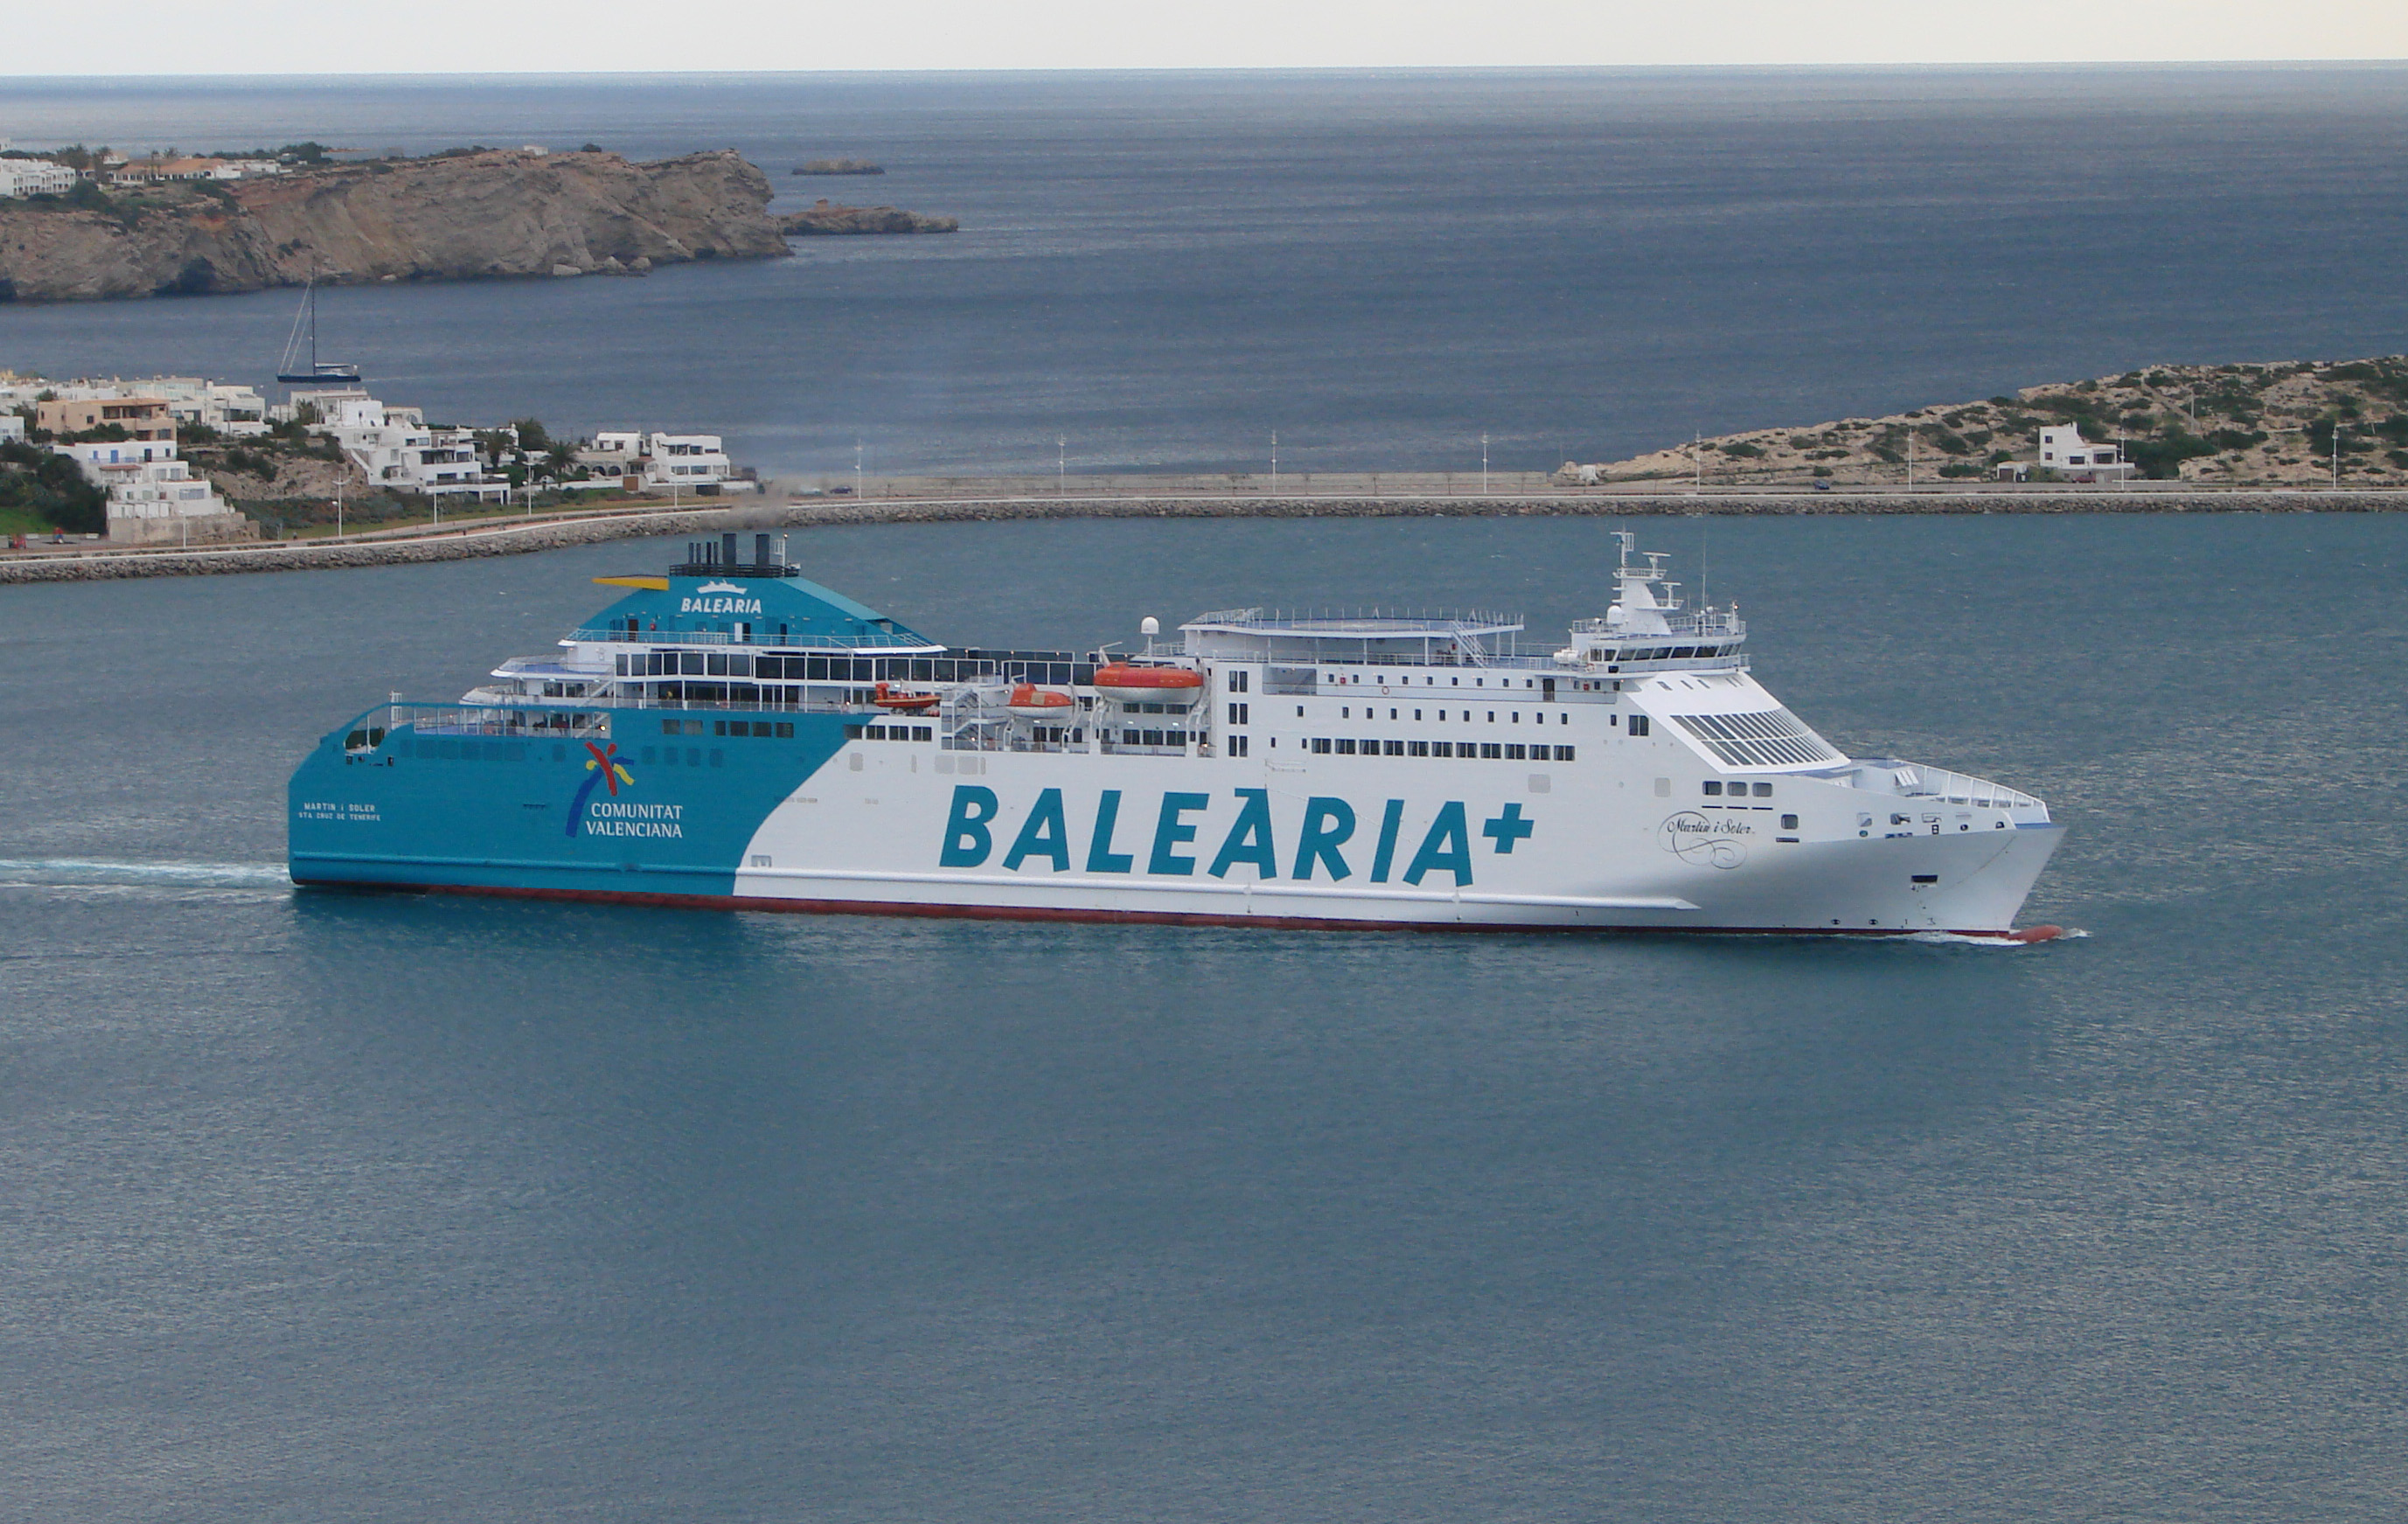 Spanish ferry operator Baleària starts sea trials of LNG-powered fast ferry